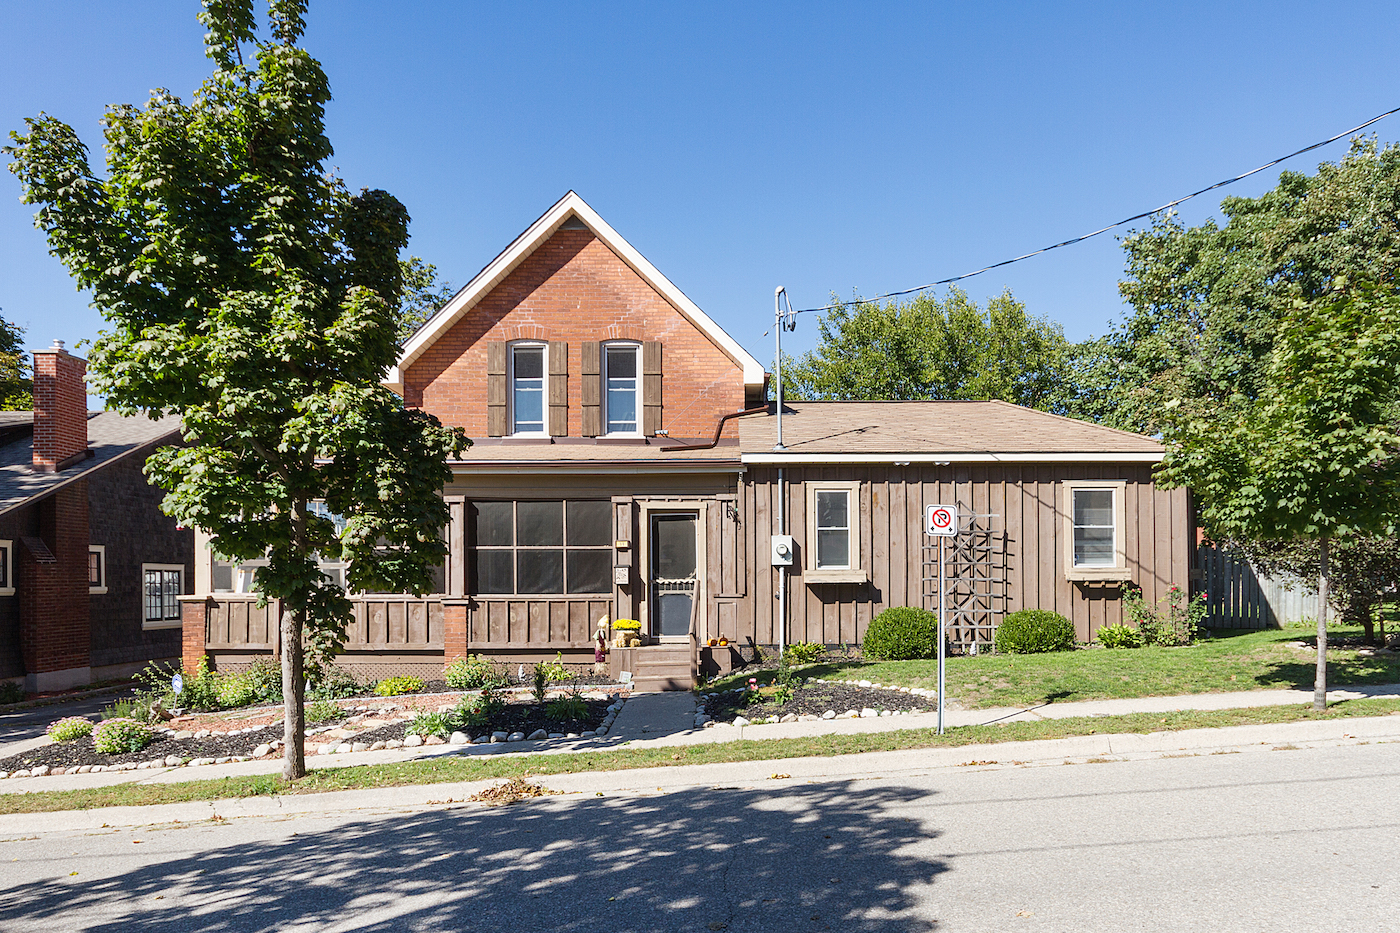 New Listing: 14 Abigail Ave - $419,900 - Updated Character Home With In-Law Suite